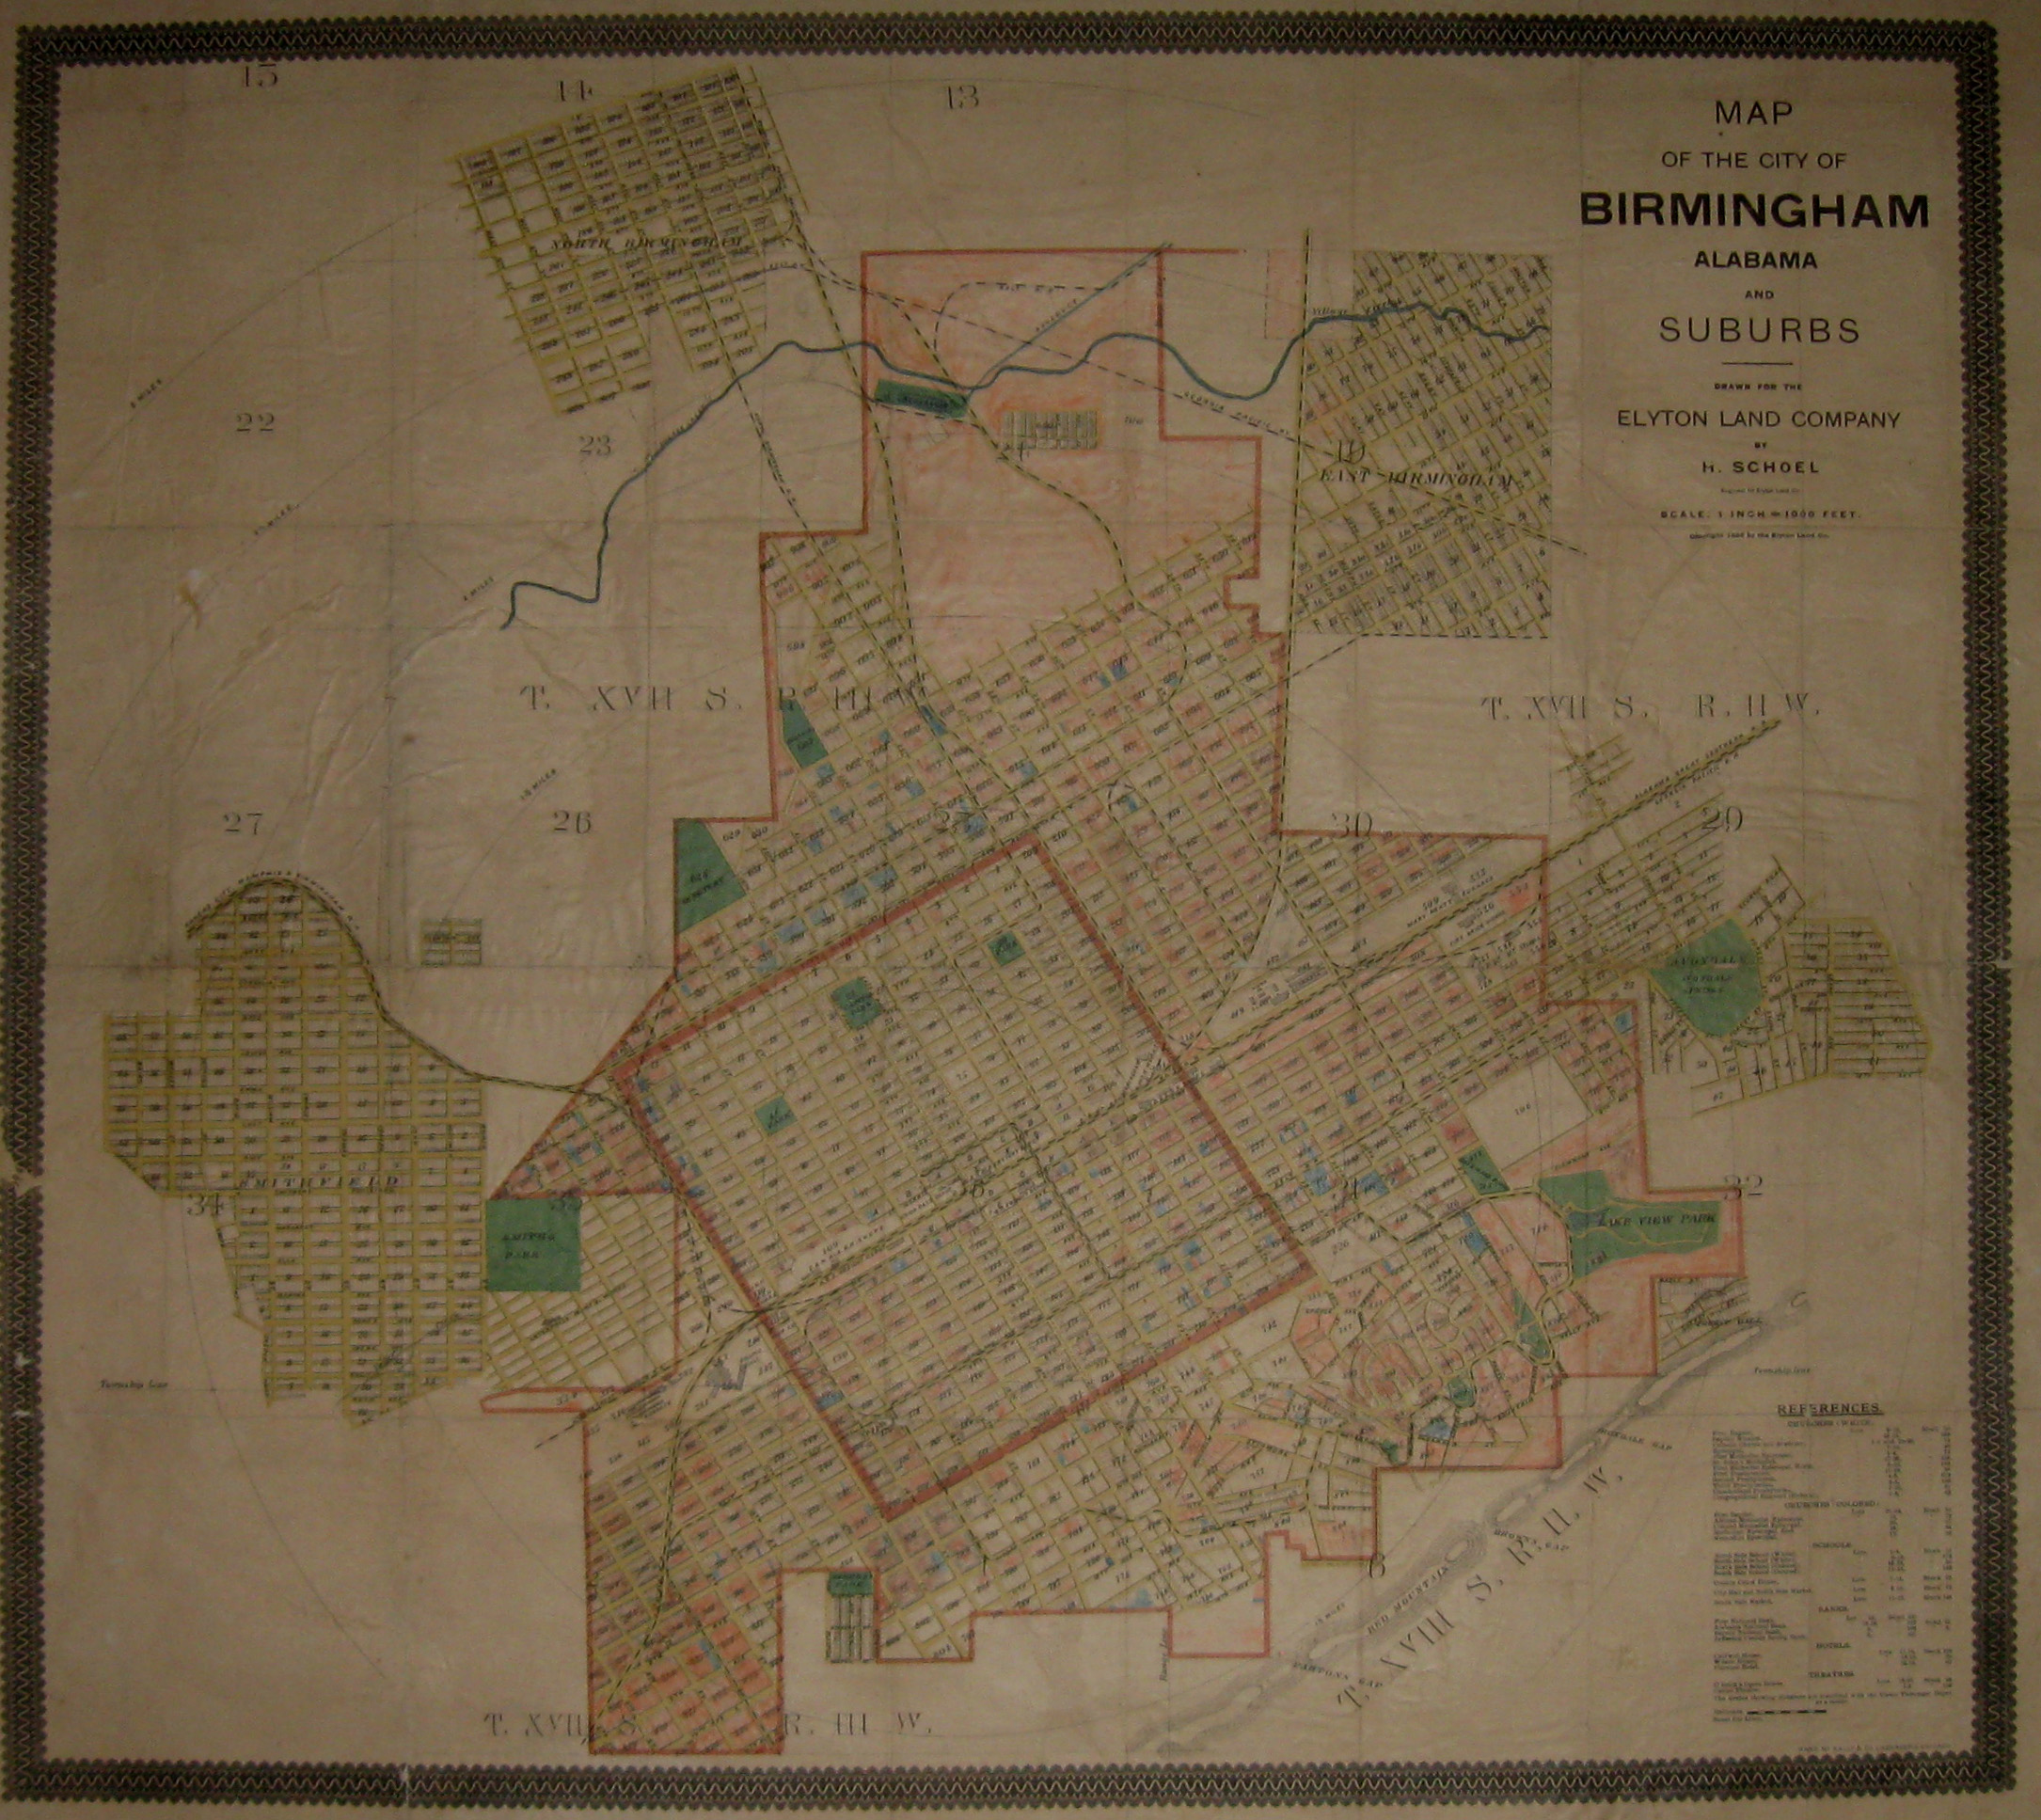 View of Birmingham's Cartographic Treasure | Cartographic ... Raw Materials Map Of Alabama on people map, greenland map, manufacturing map, raw resources world map, transportation map,